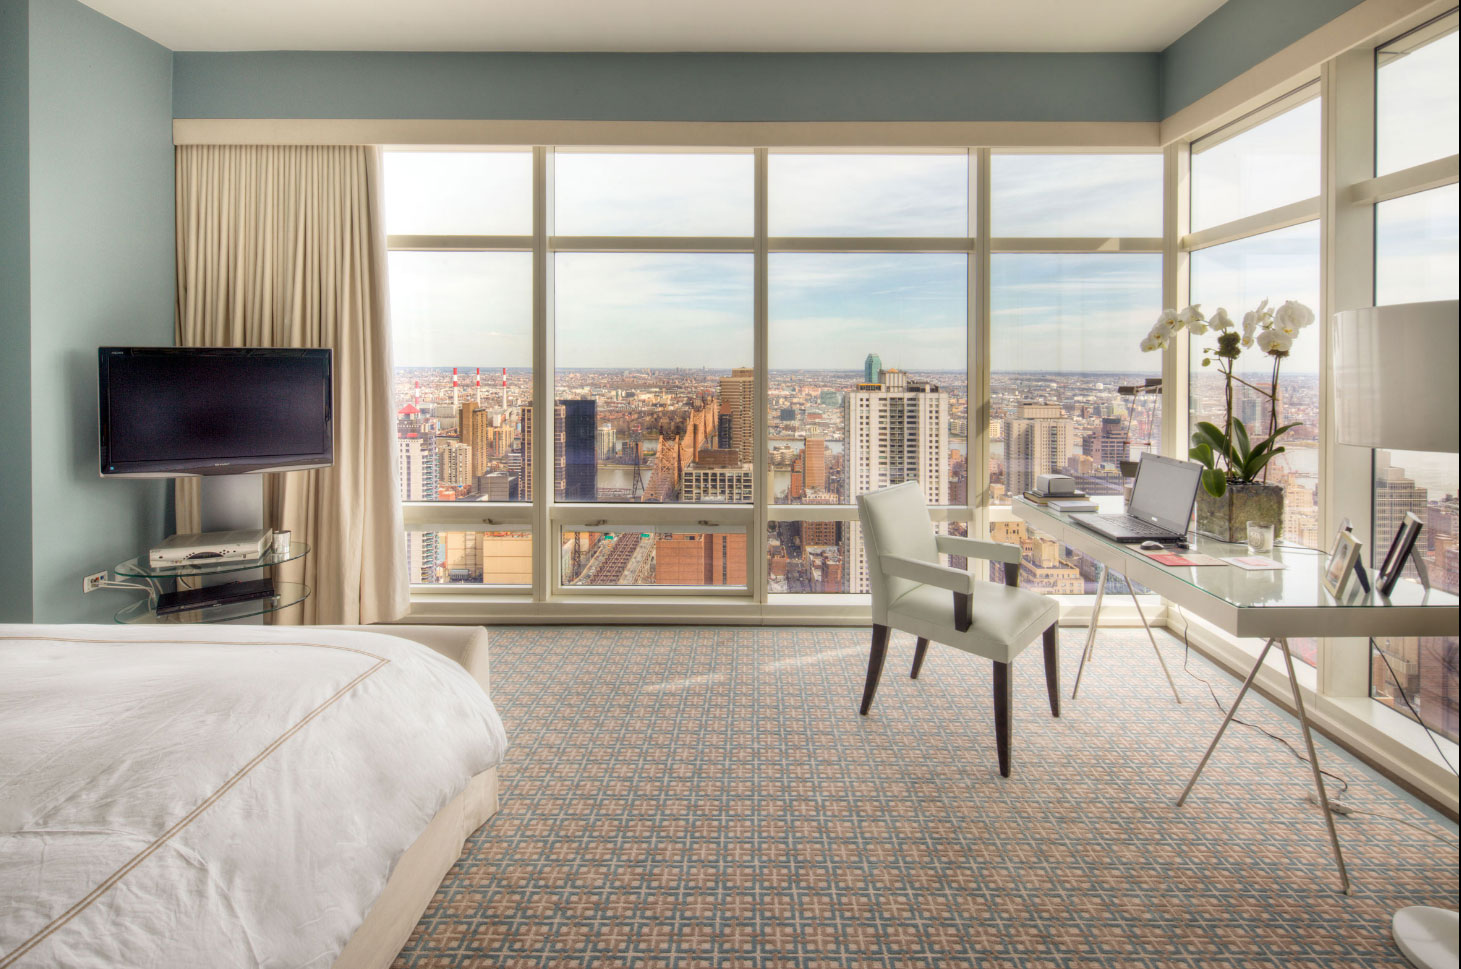 This high-floor contemporary apartment with interiors by Jacques Grange and Richard Mishaan has a lofty location atop atop the headquarters of Bloomberg L.P. in One Beacon Court — one of the tallest buildings in New York City.